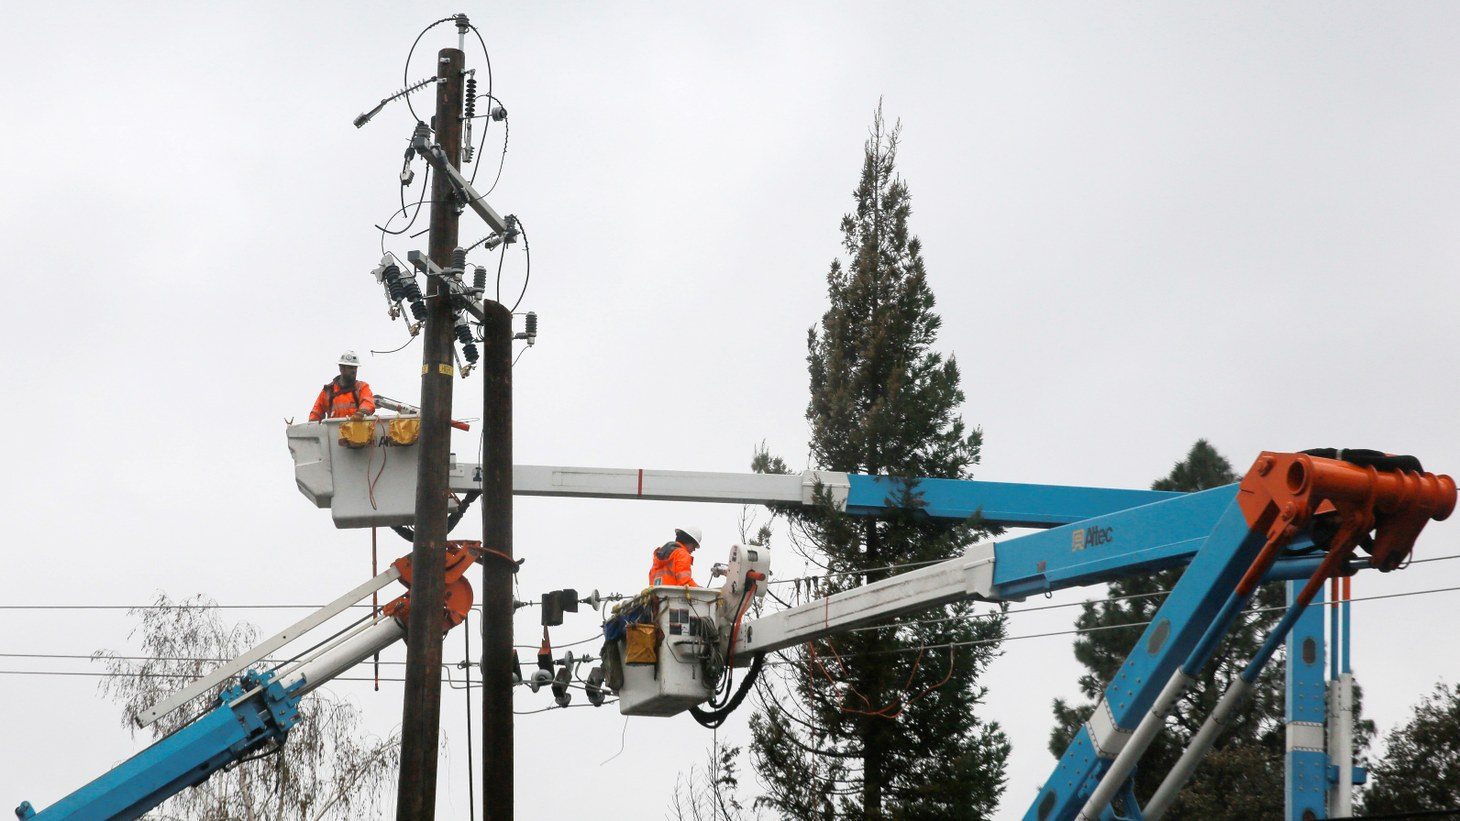 PG&E crew work on power lines to repair damage caused by the Camp Fire in Paradise, California, U.S. November 21, 2018